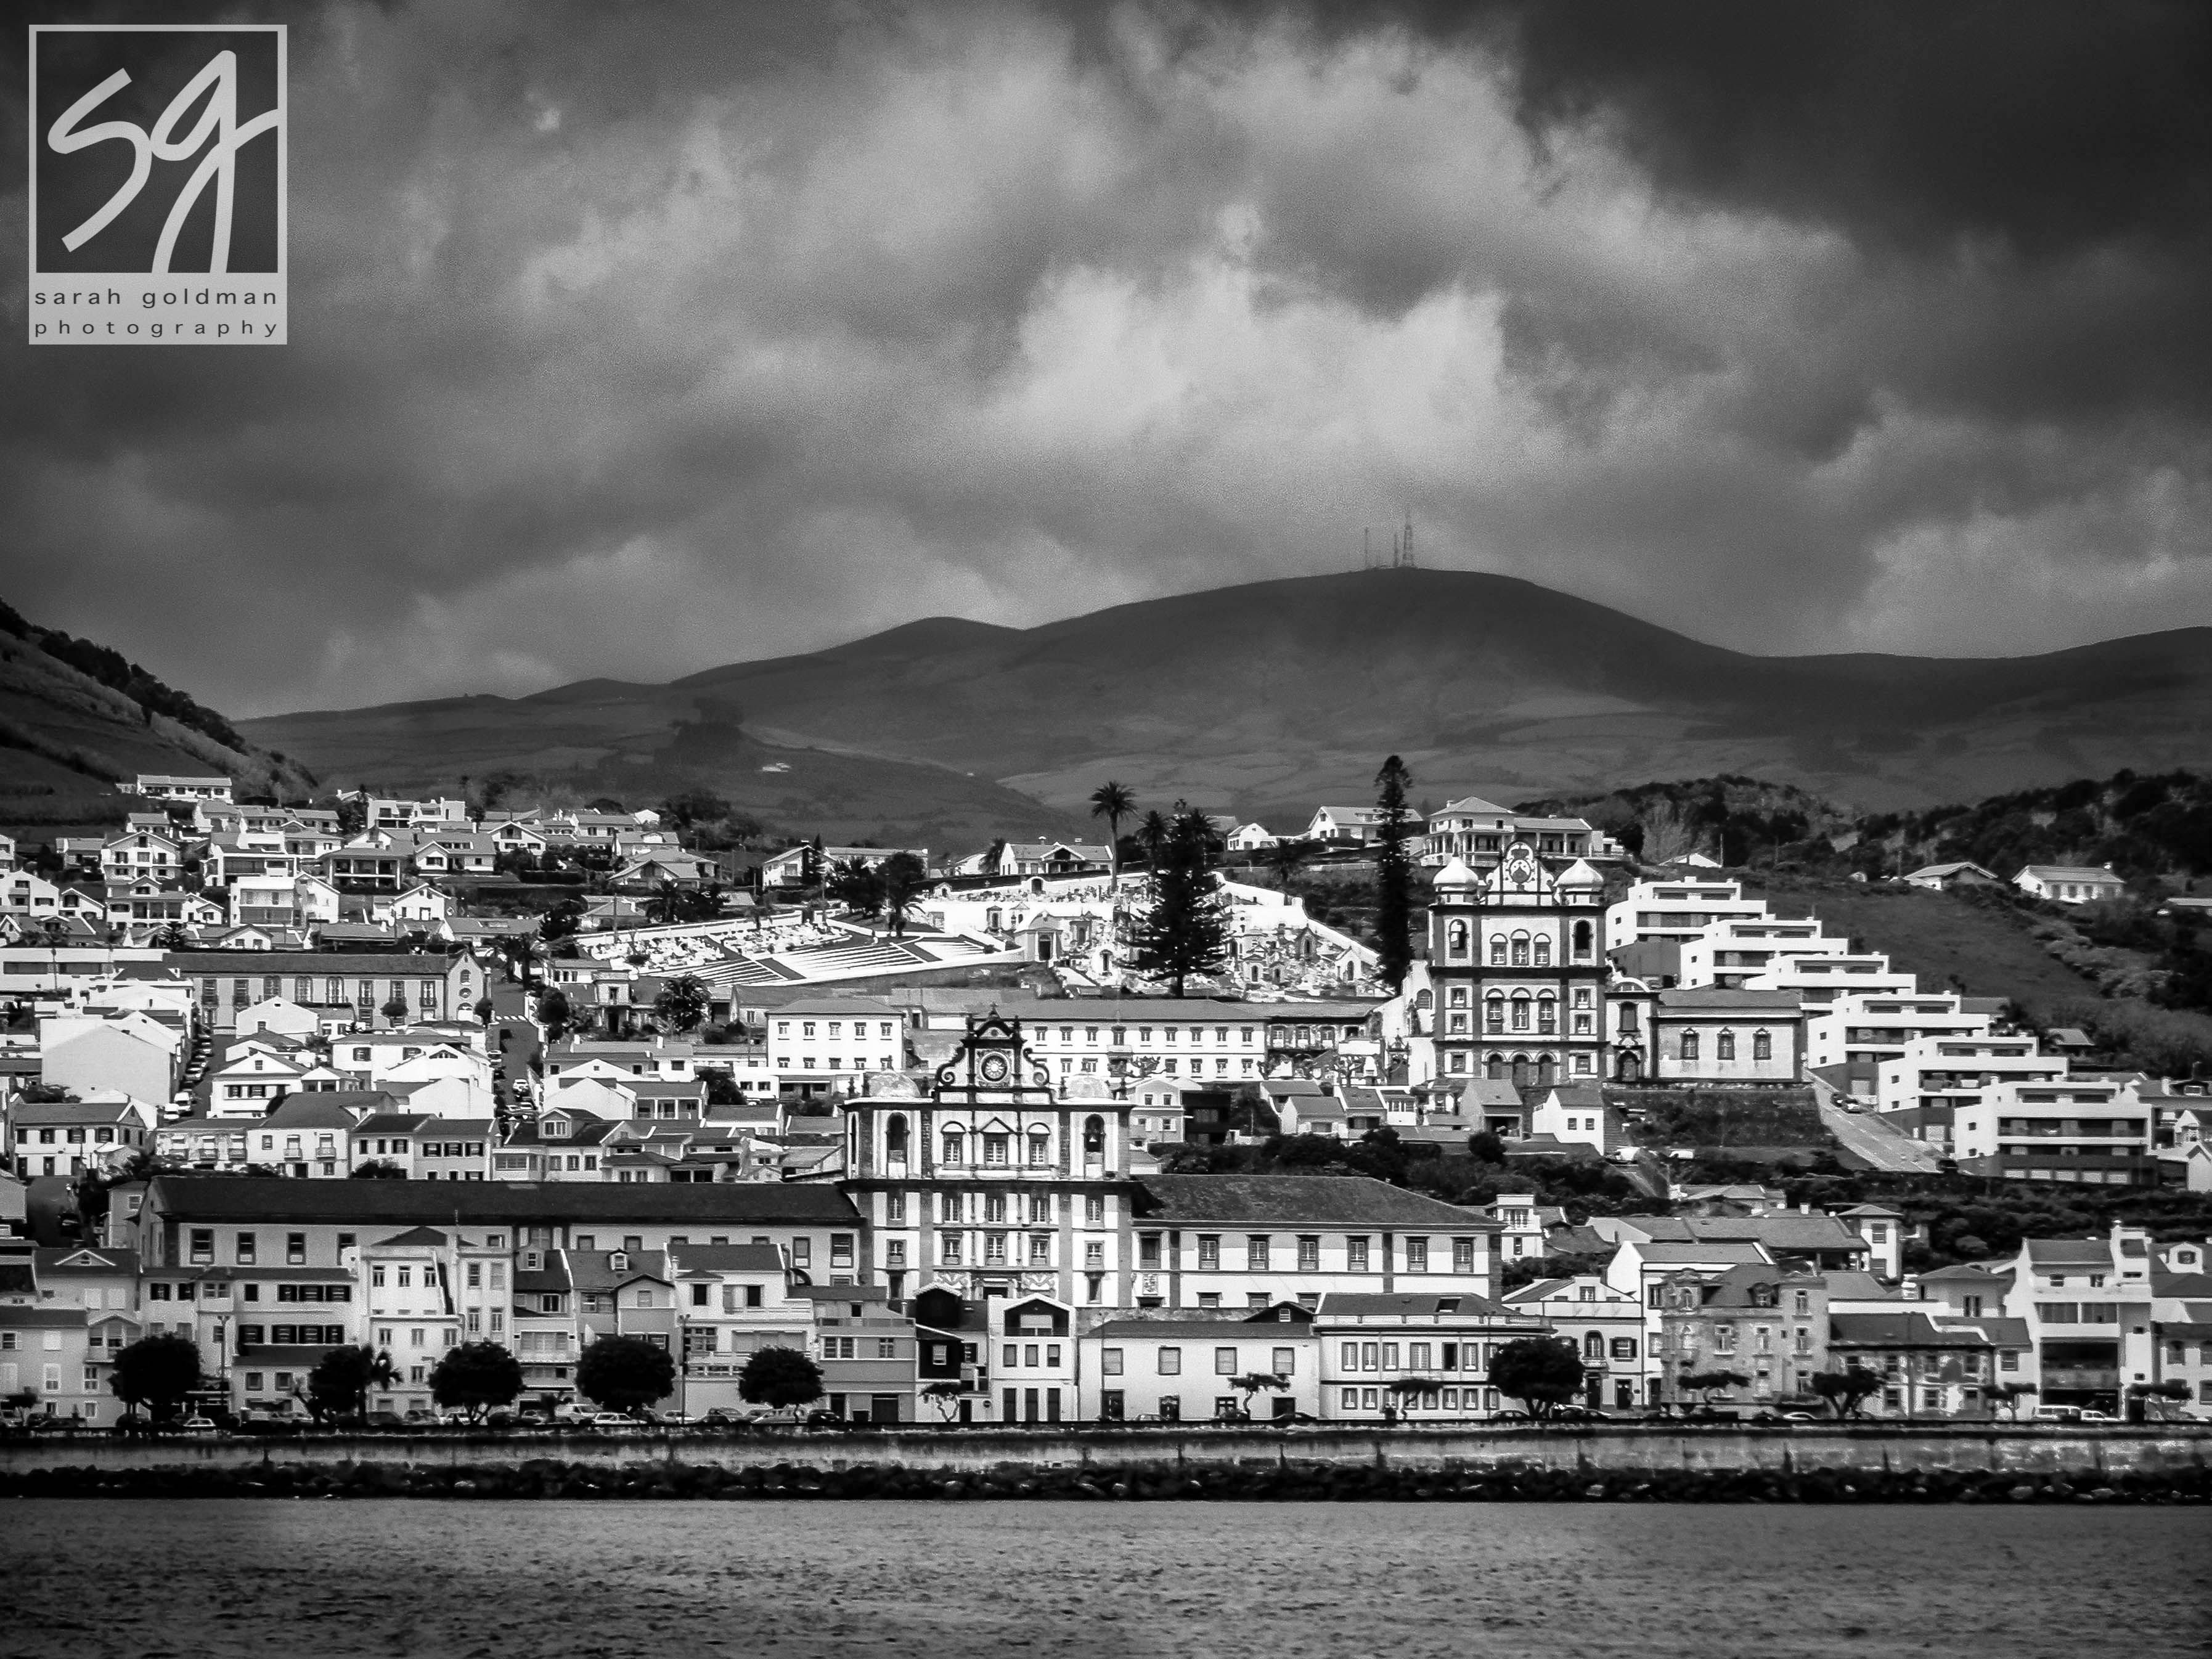 View of Horta,Faial Island, Azores from ferry to Pico Island sarah goldman photography